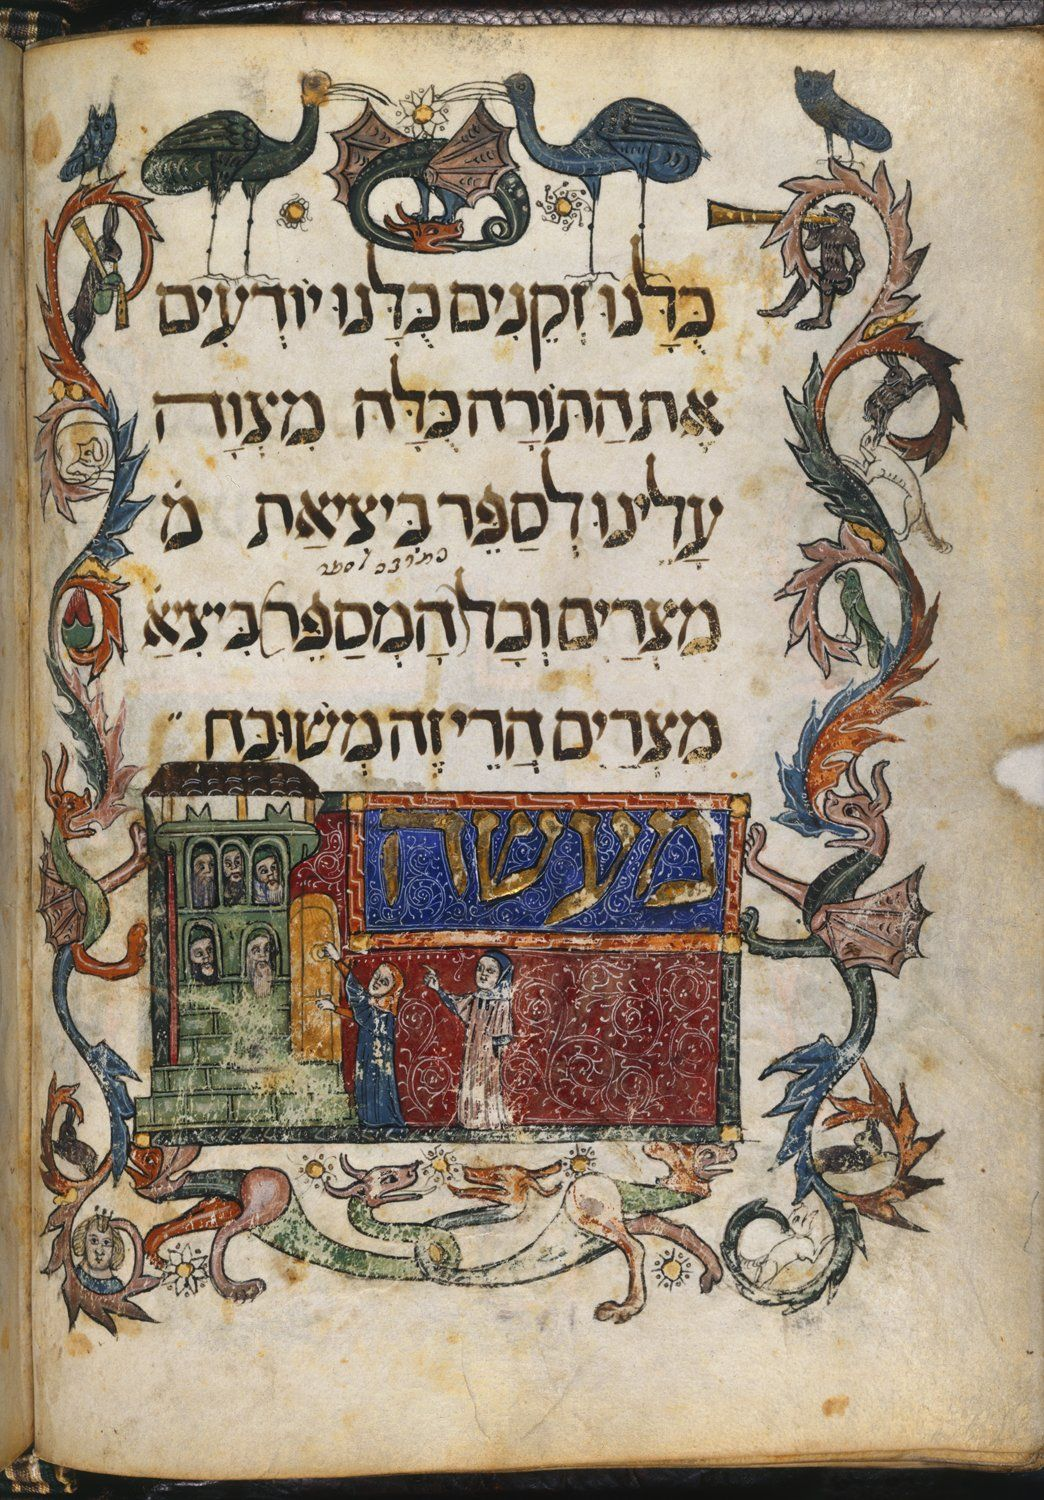 Libro Sagrado Judio Rabbis At Benei Braq Old Jewish Illuminated Manuscripts